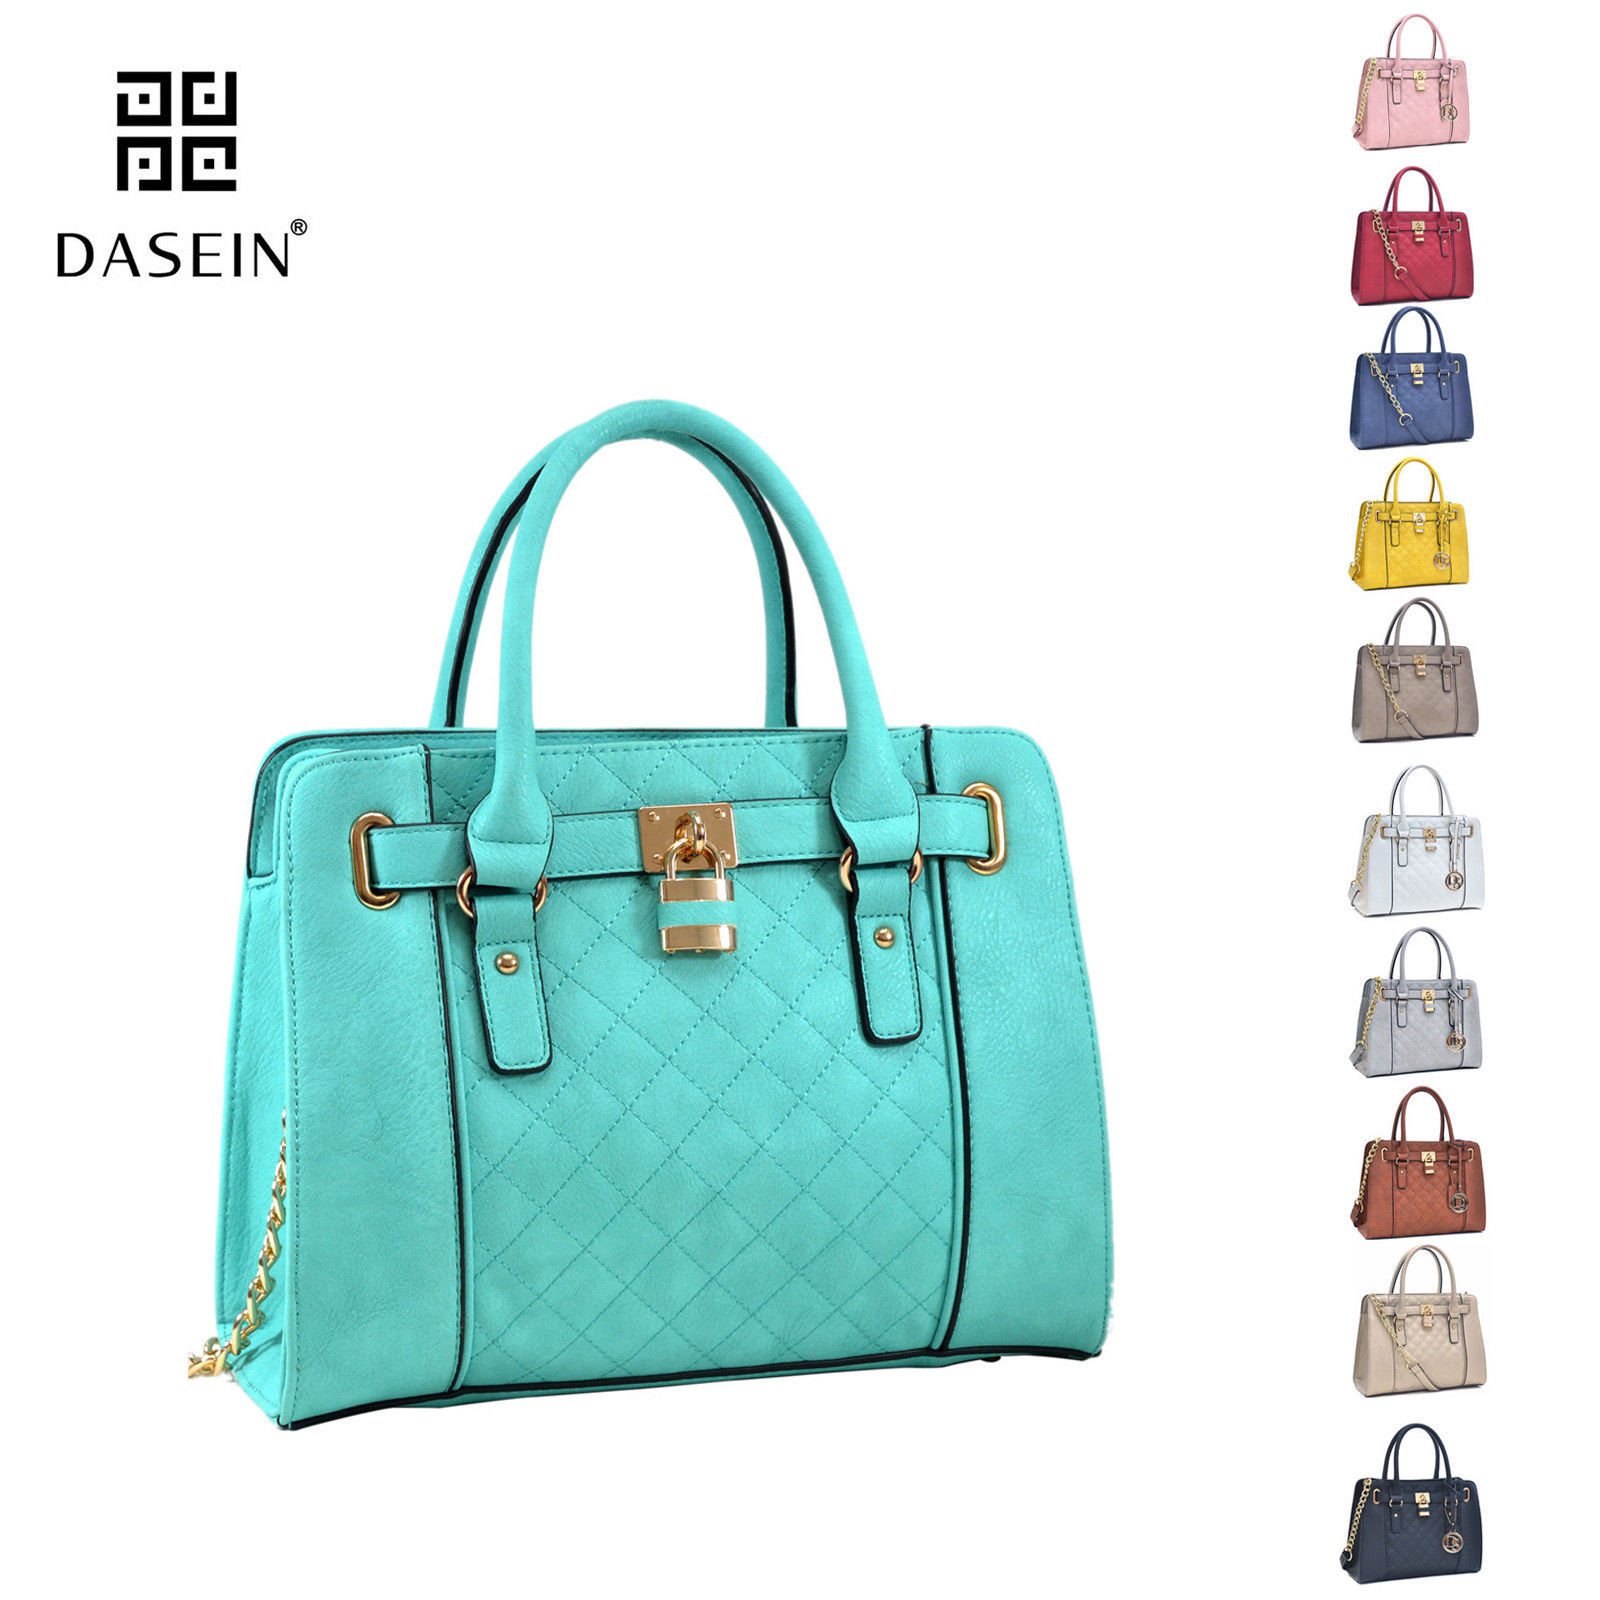 New Womens Handbags Leather Satchel Tote Bags Shoulder Bag Padlock Medium Purse 28 99